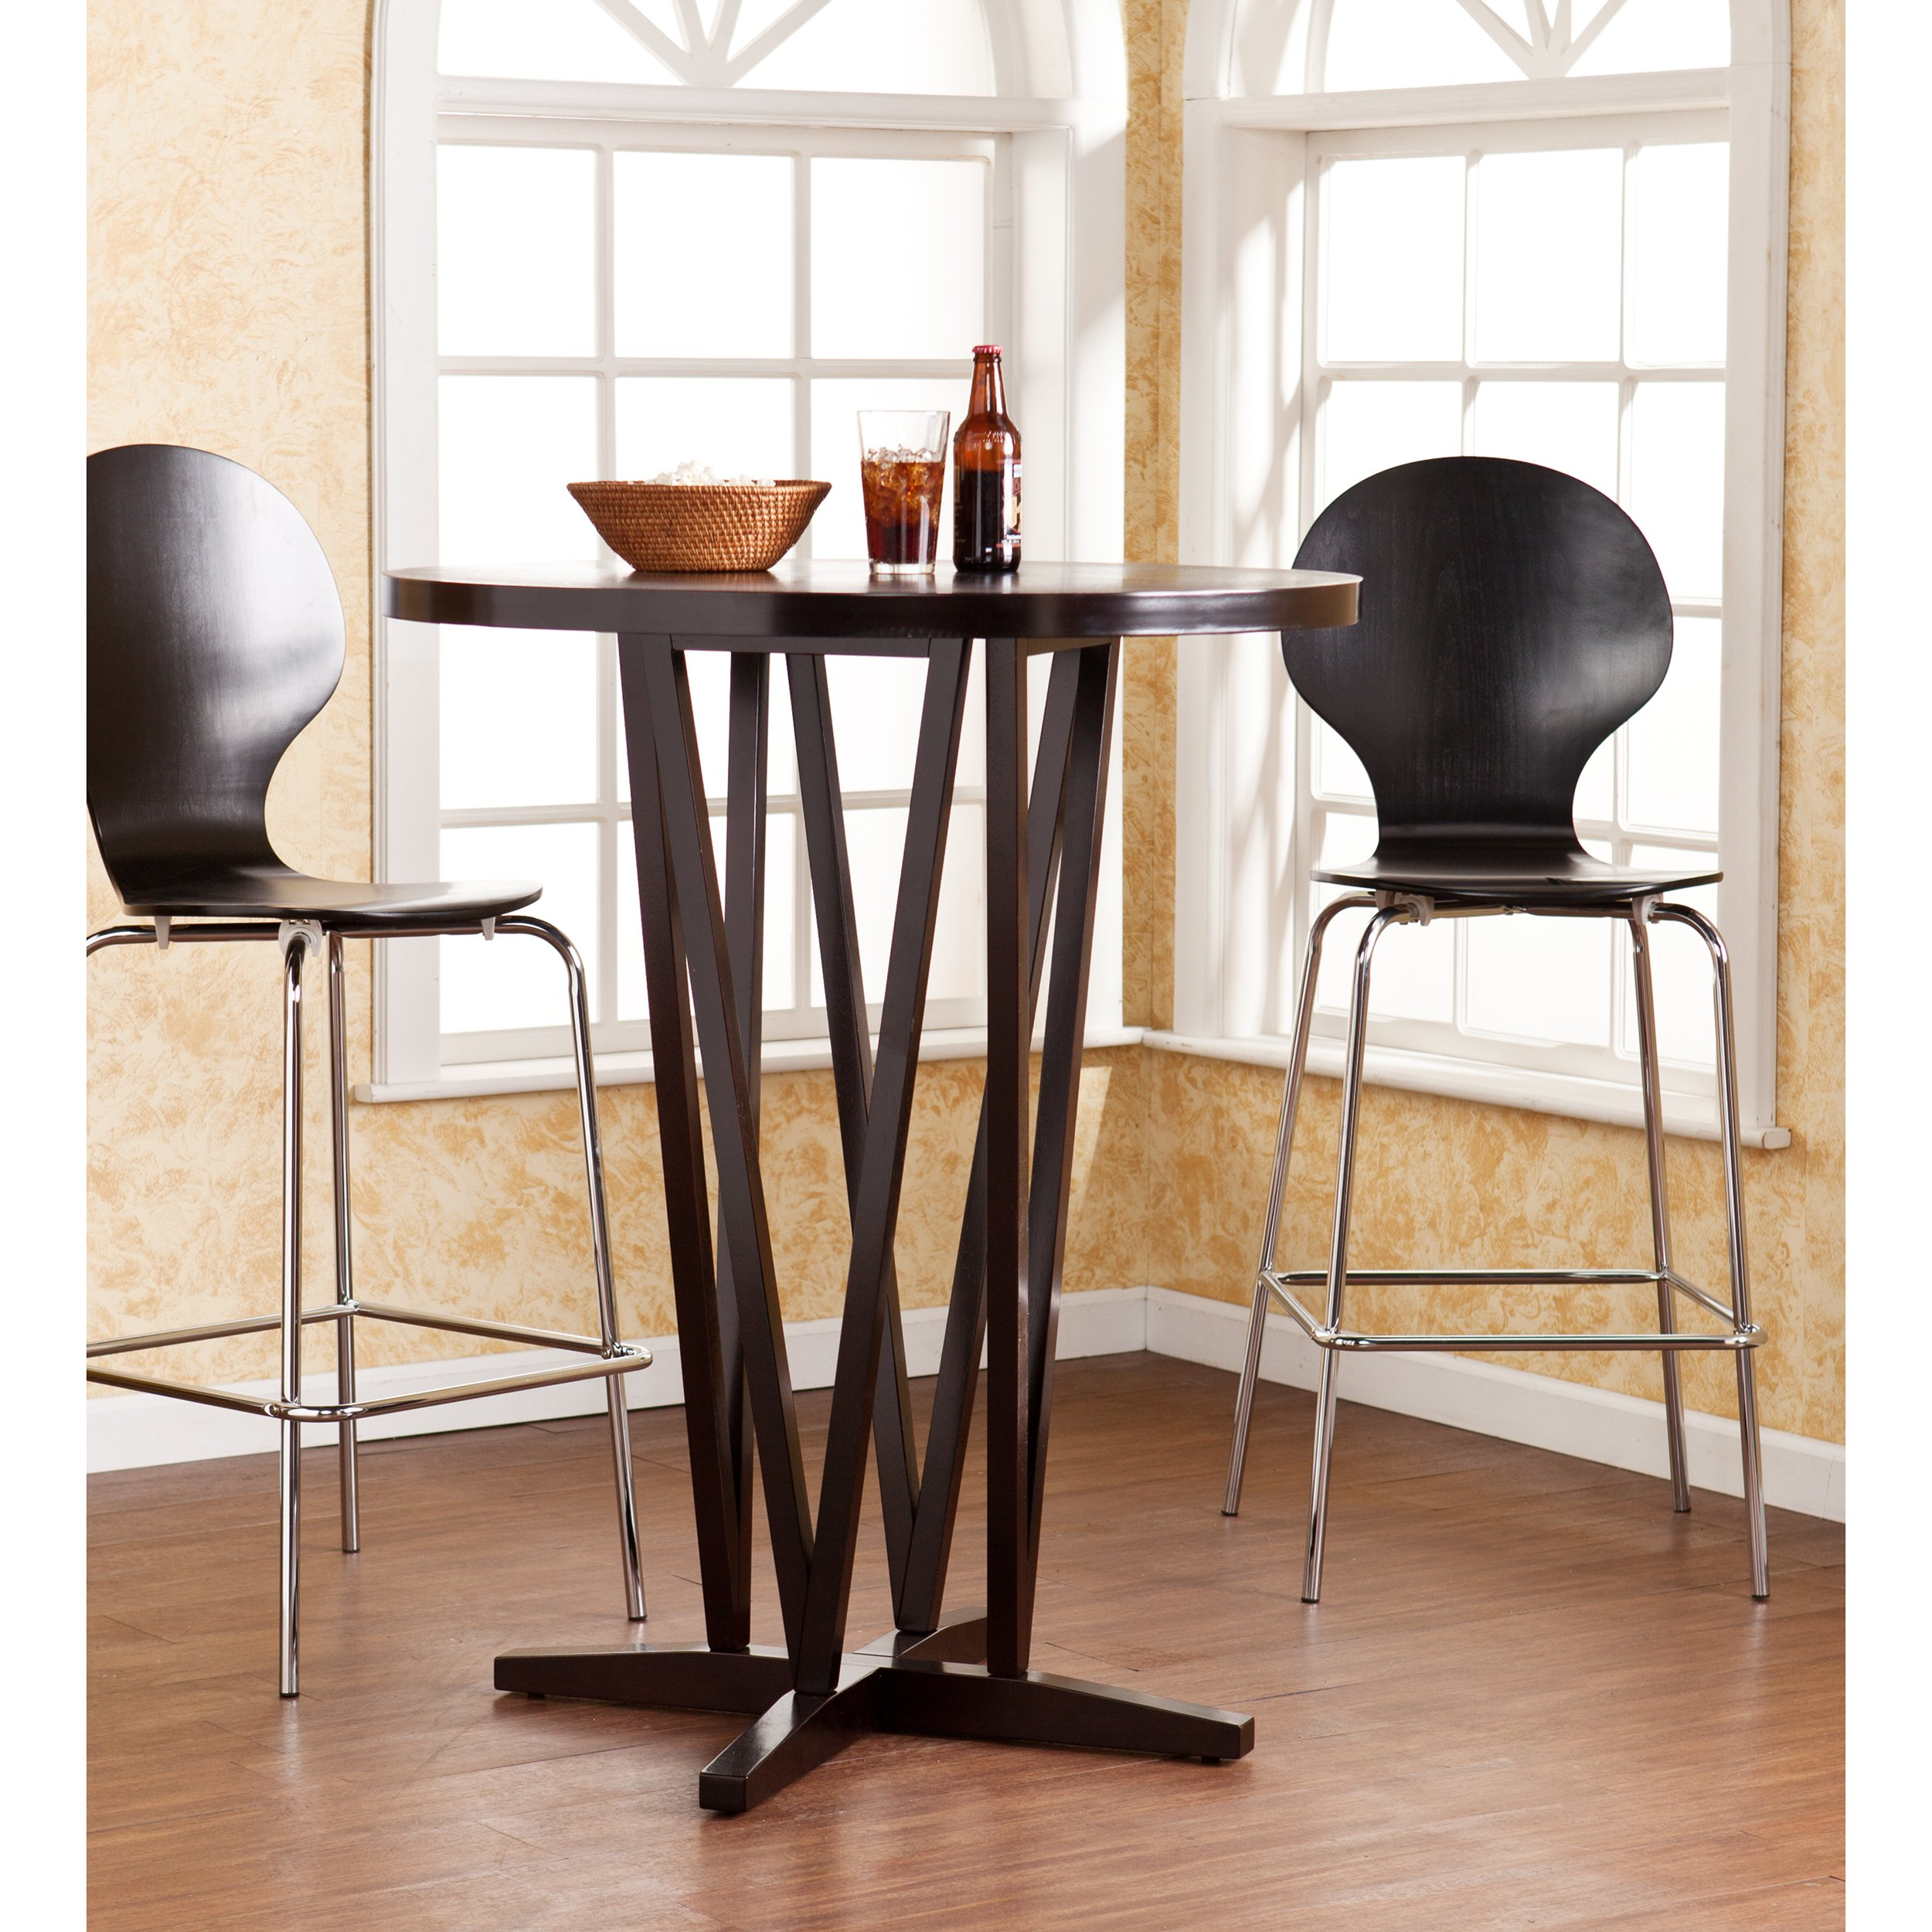 Devon 43'' Bar Table - Dark Expresso Finish w/ Grain Pattern - Space Saving Design by SEI